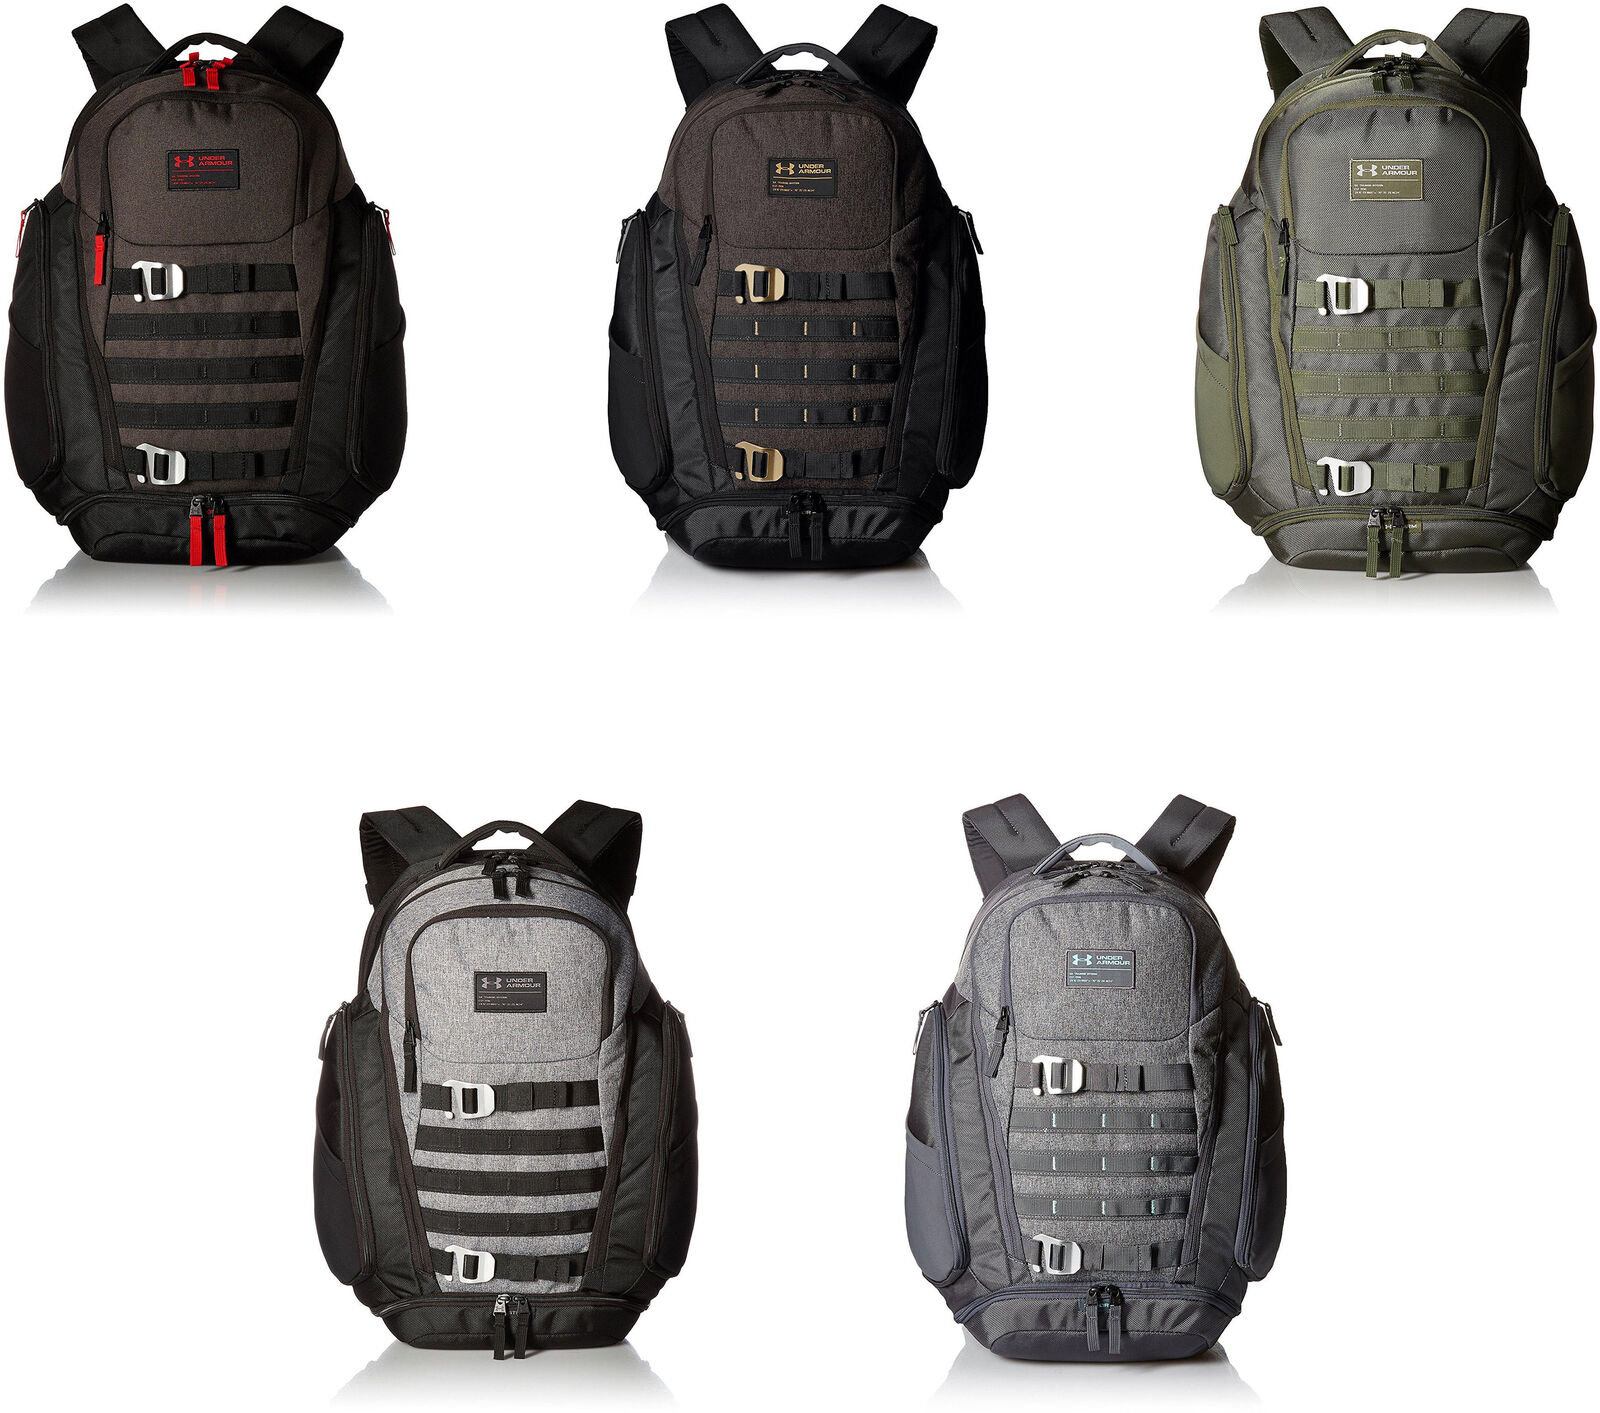 shades of casual shoes innovative design Under Armour UA Huey Backpack, 5 Colors   eBay